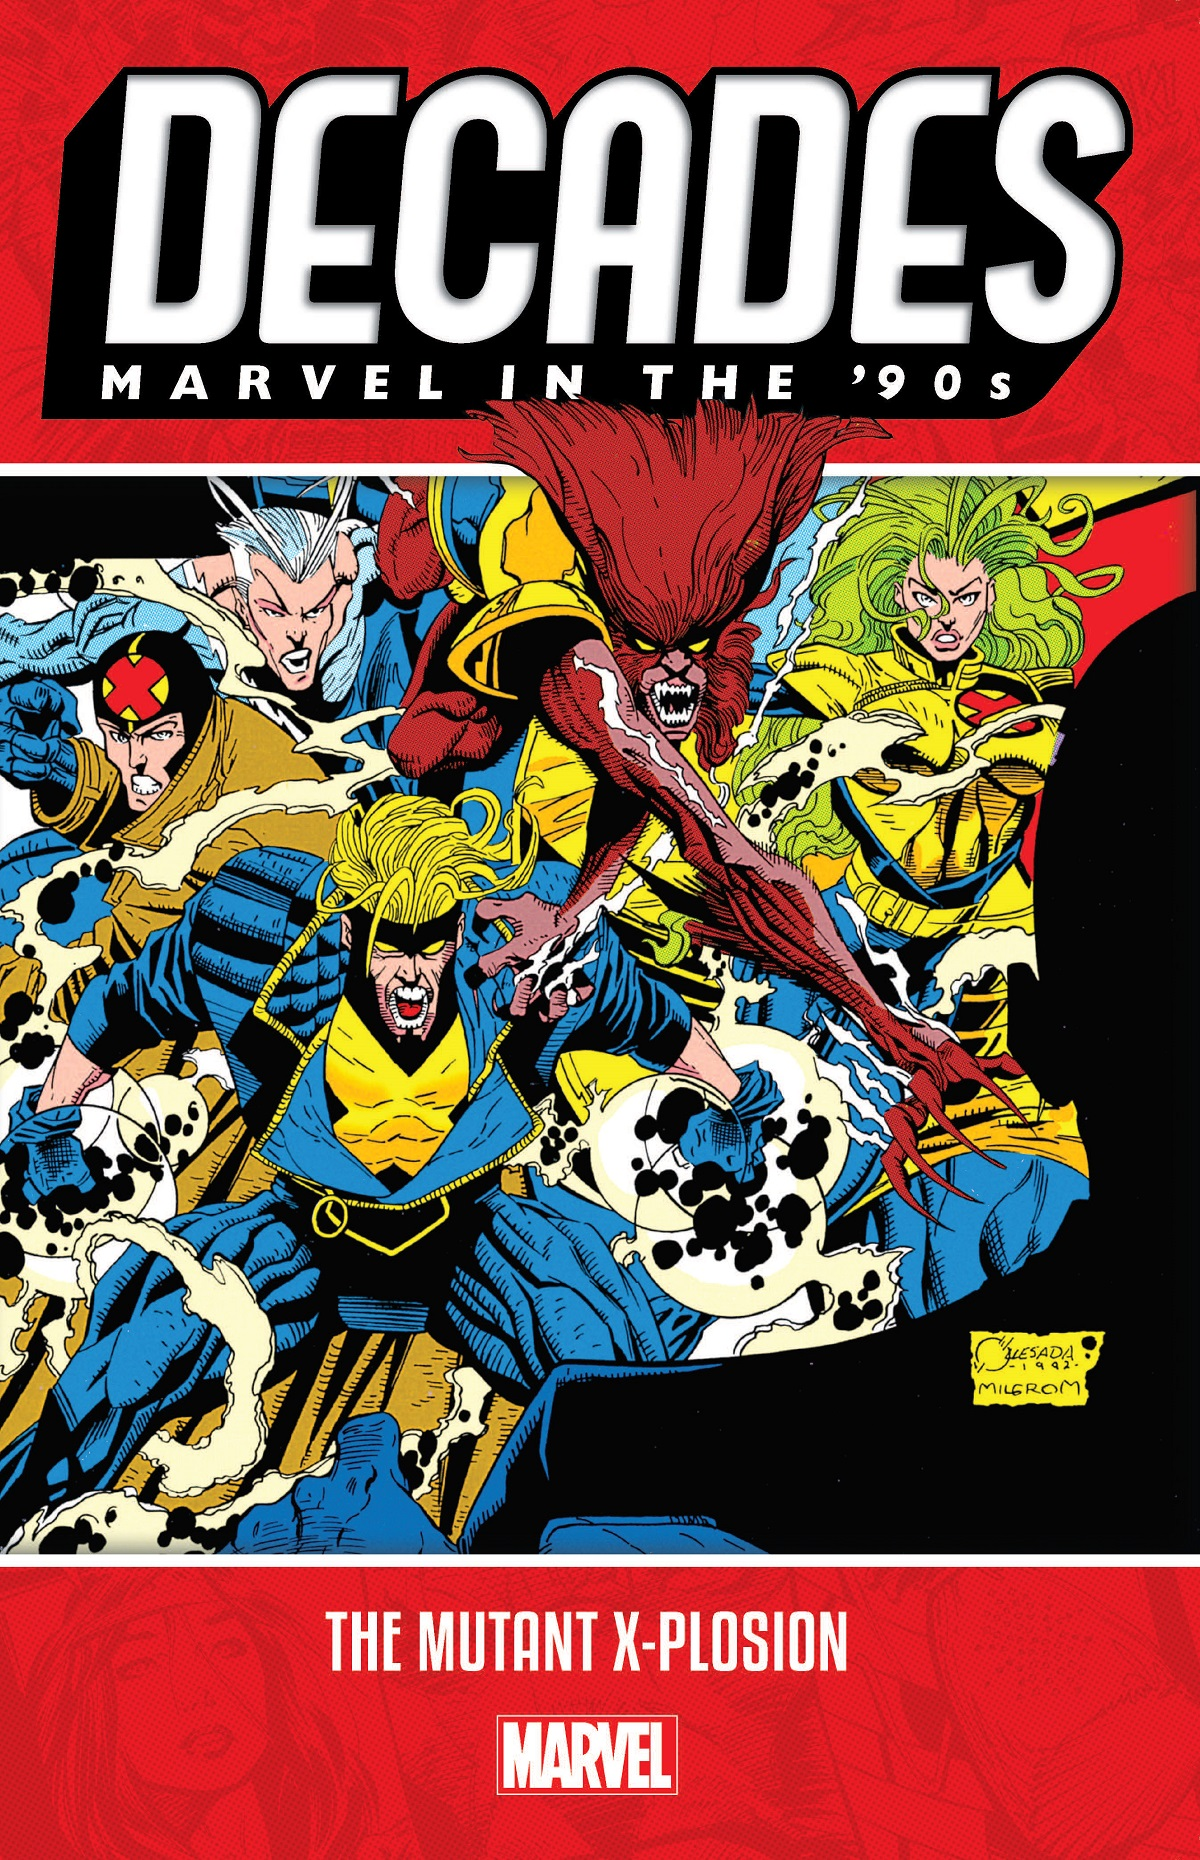 Decades: Marvel In The '90s - The Mutant X-plosion (Trade Paperback)